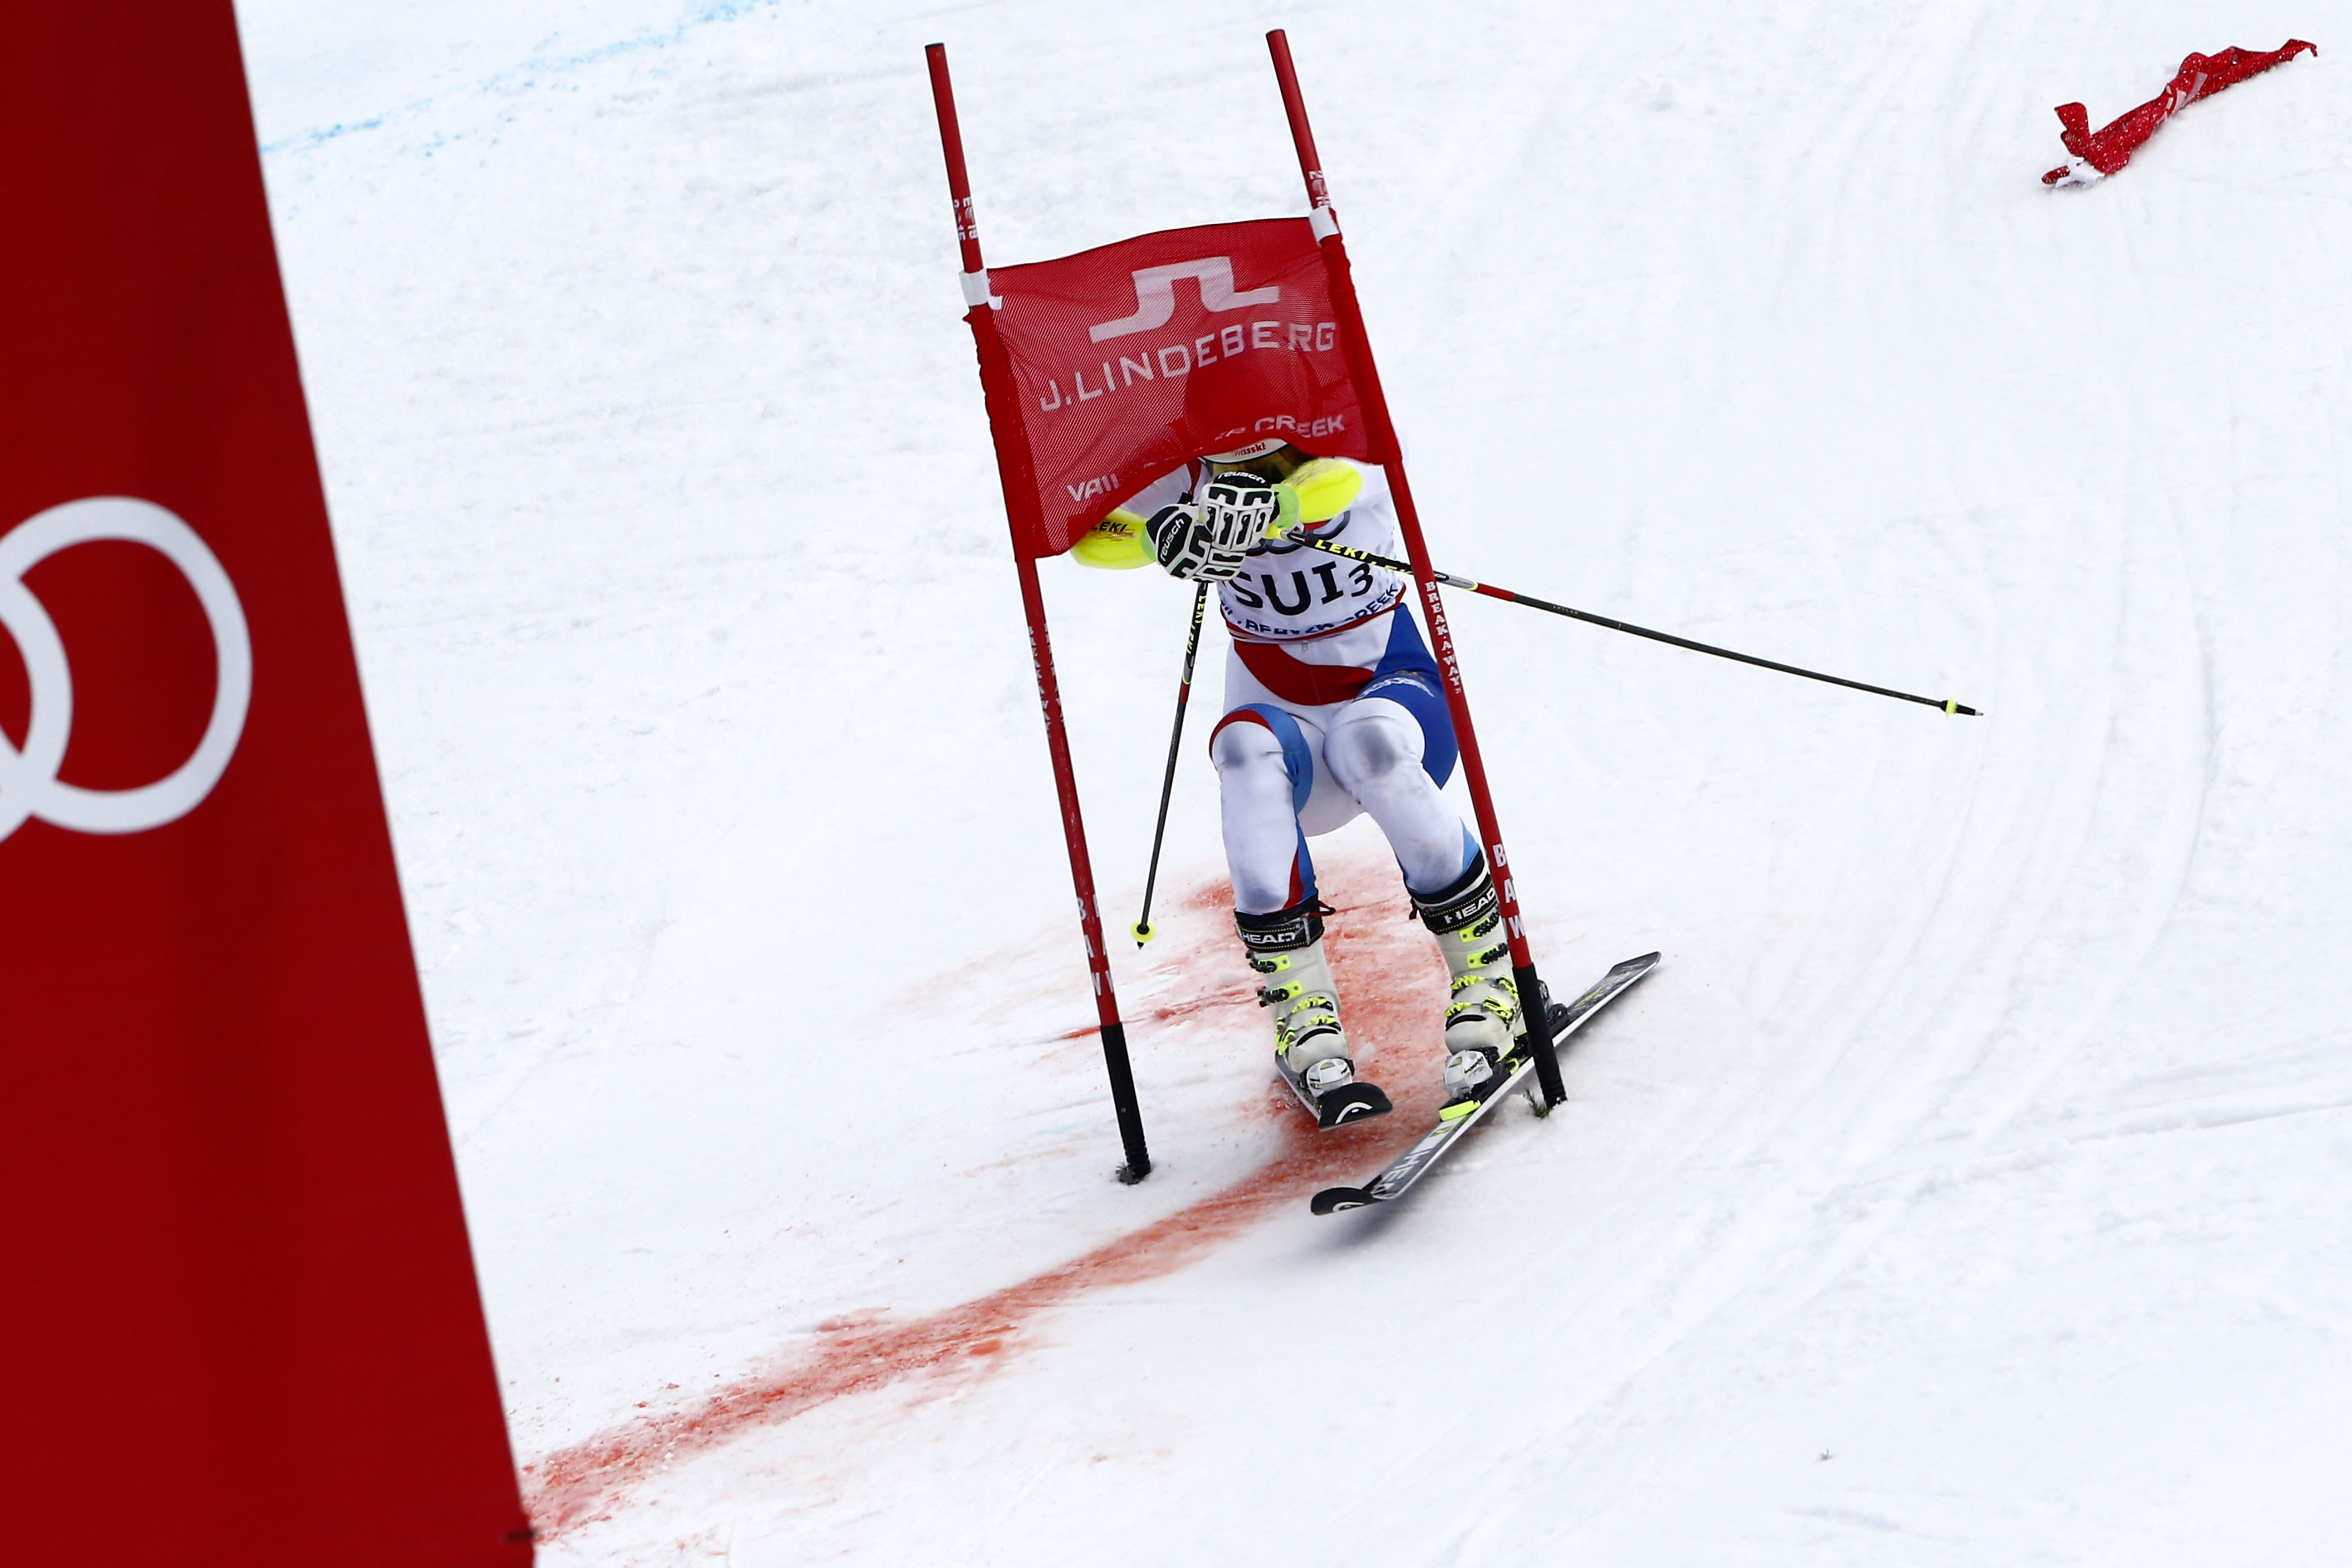 Wendy Holdener of Switzerland skis through a gate during the FIS Alpine World Ski Championships Nations Team Event on February 10, 2015 in Beaver Creek, Colorado. (Photo by Christophe Pallot/Agence Zoom/Getty Images)